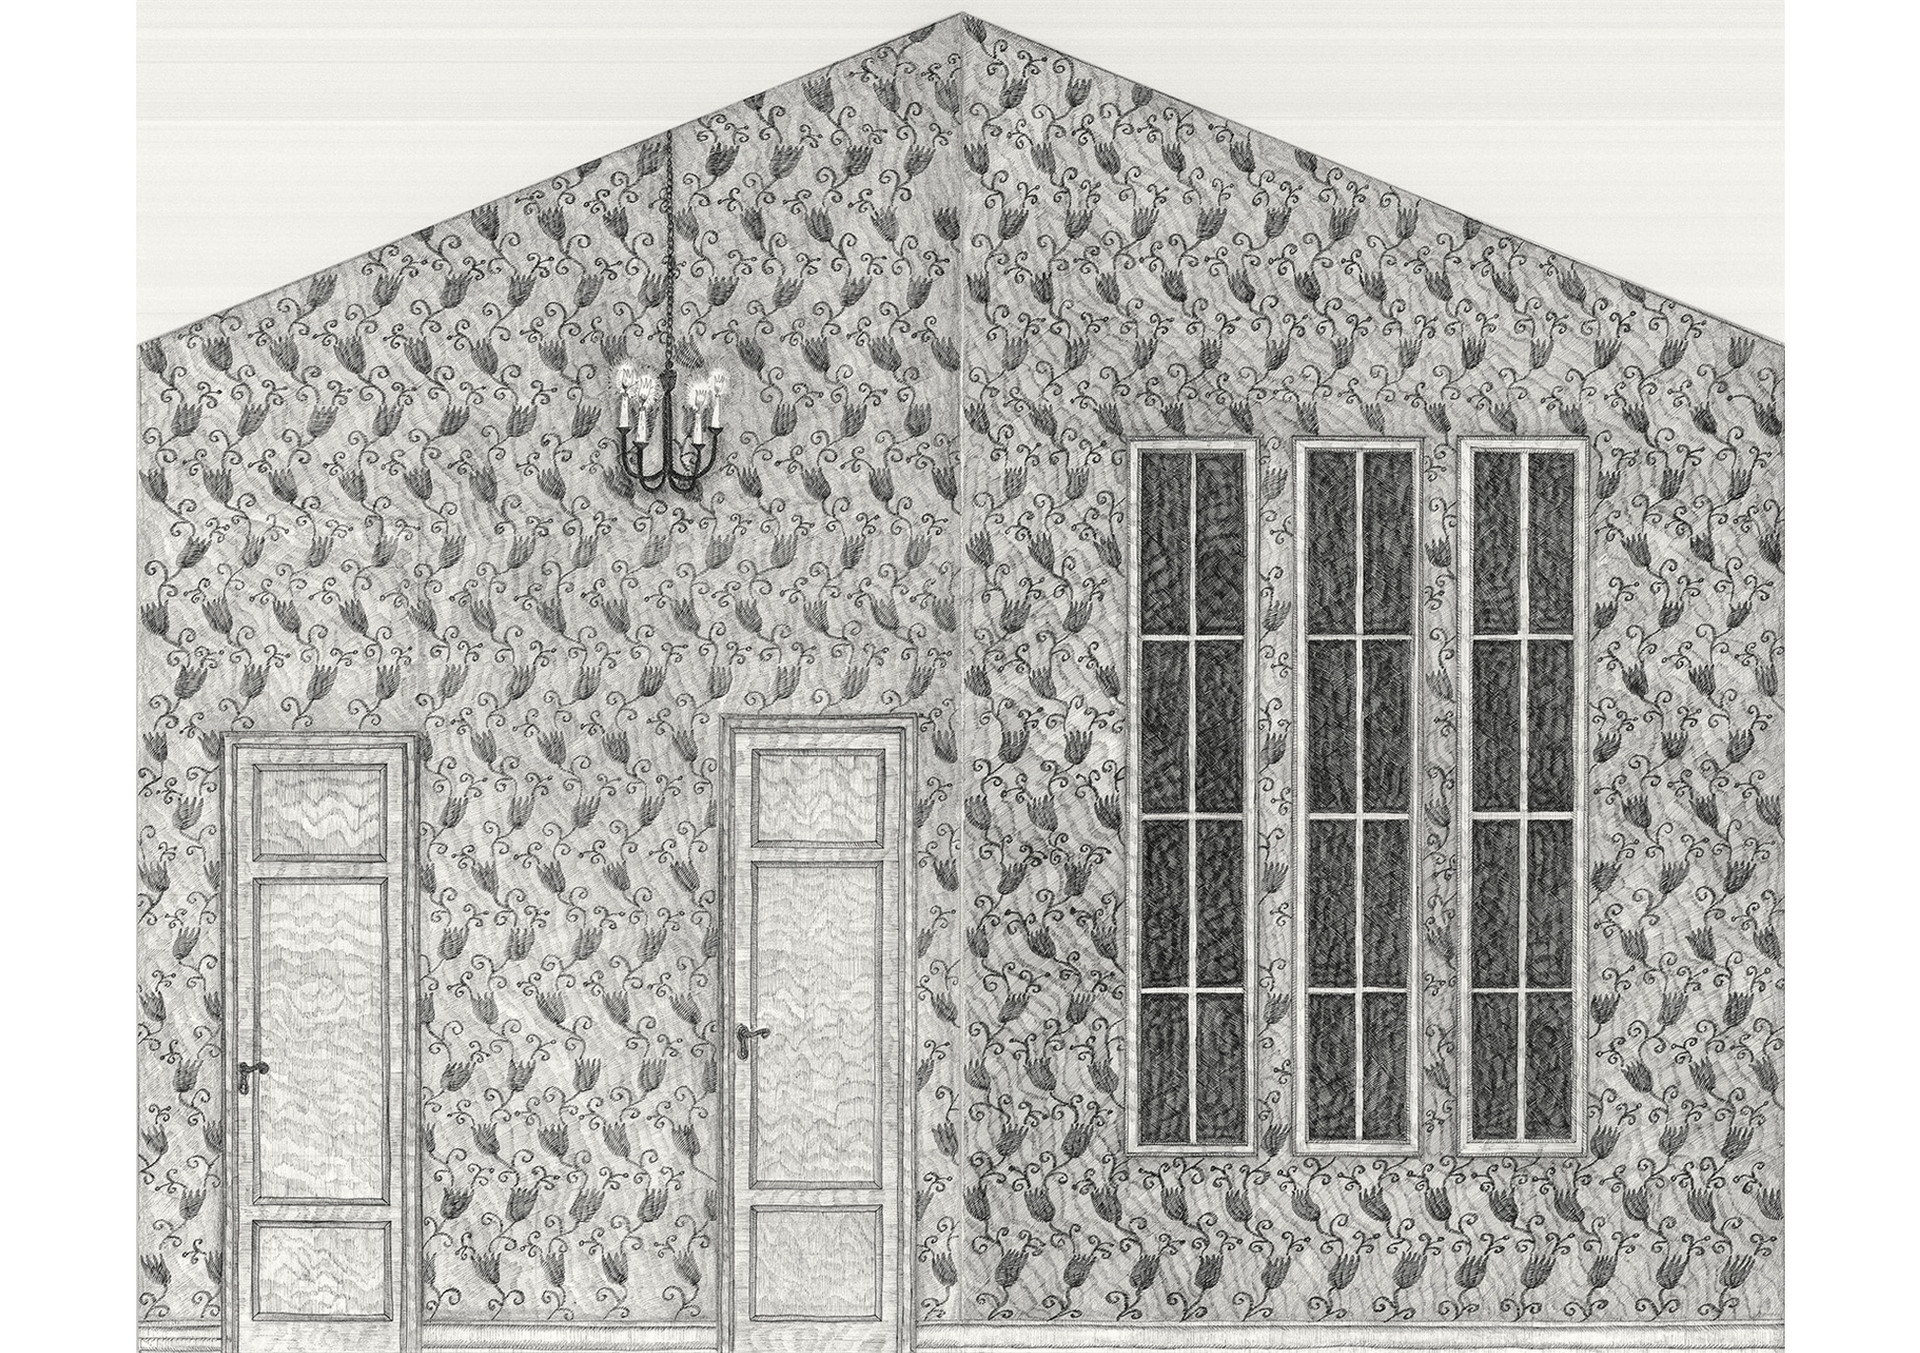 Room with Windows (Dreaming House), 2015. Ink pen and pencil on paper, 41.5 × 50.5 cm